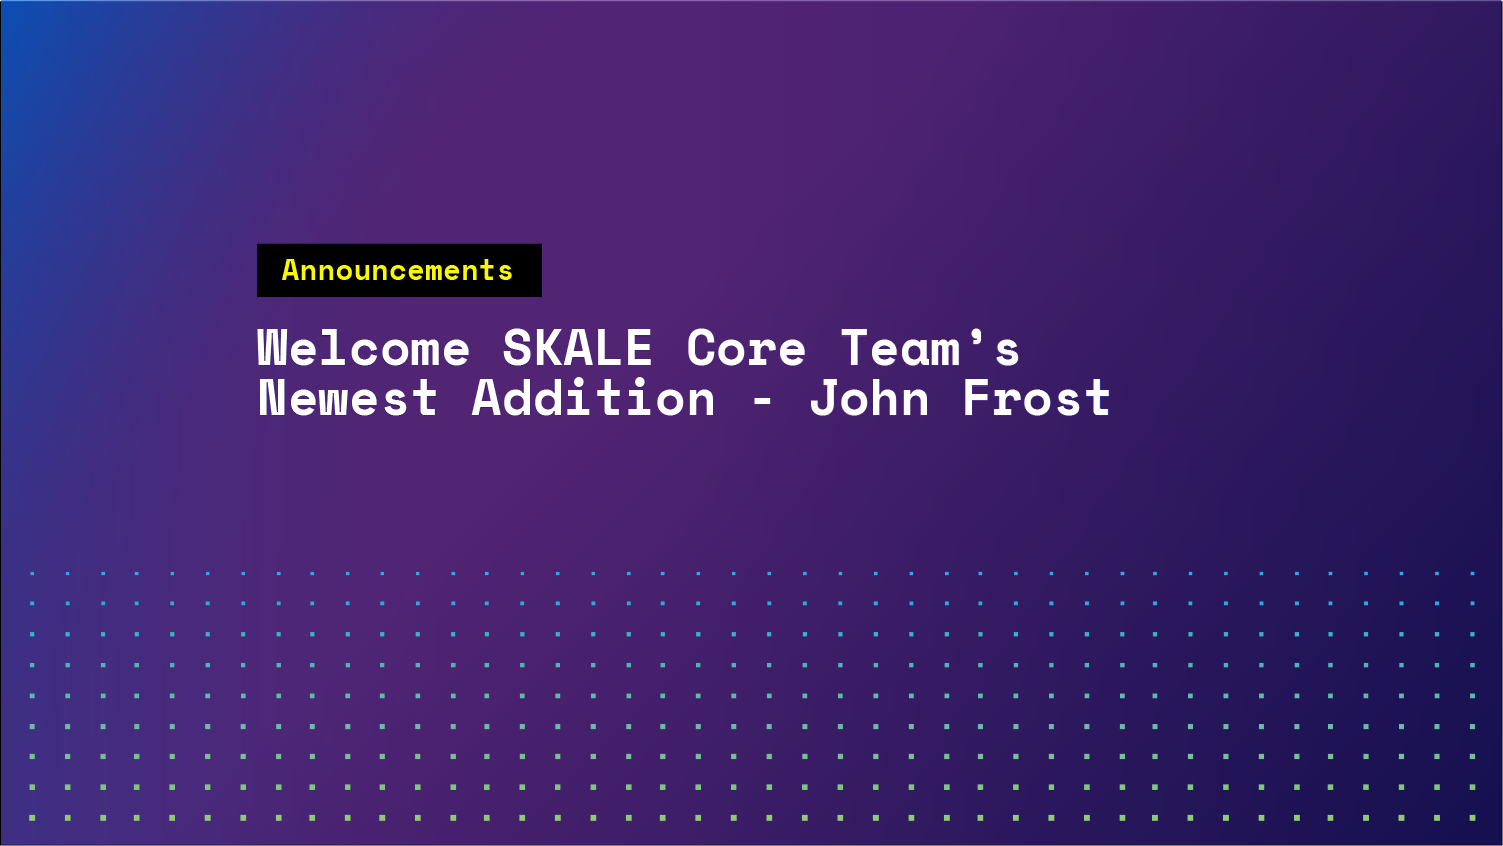 Please Welcome SKALE Core Team's Newest Addition, John Frost